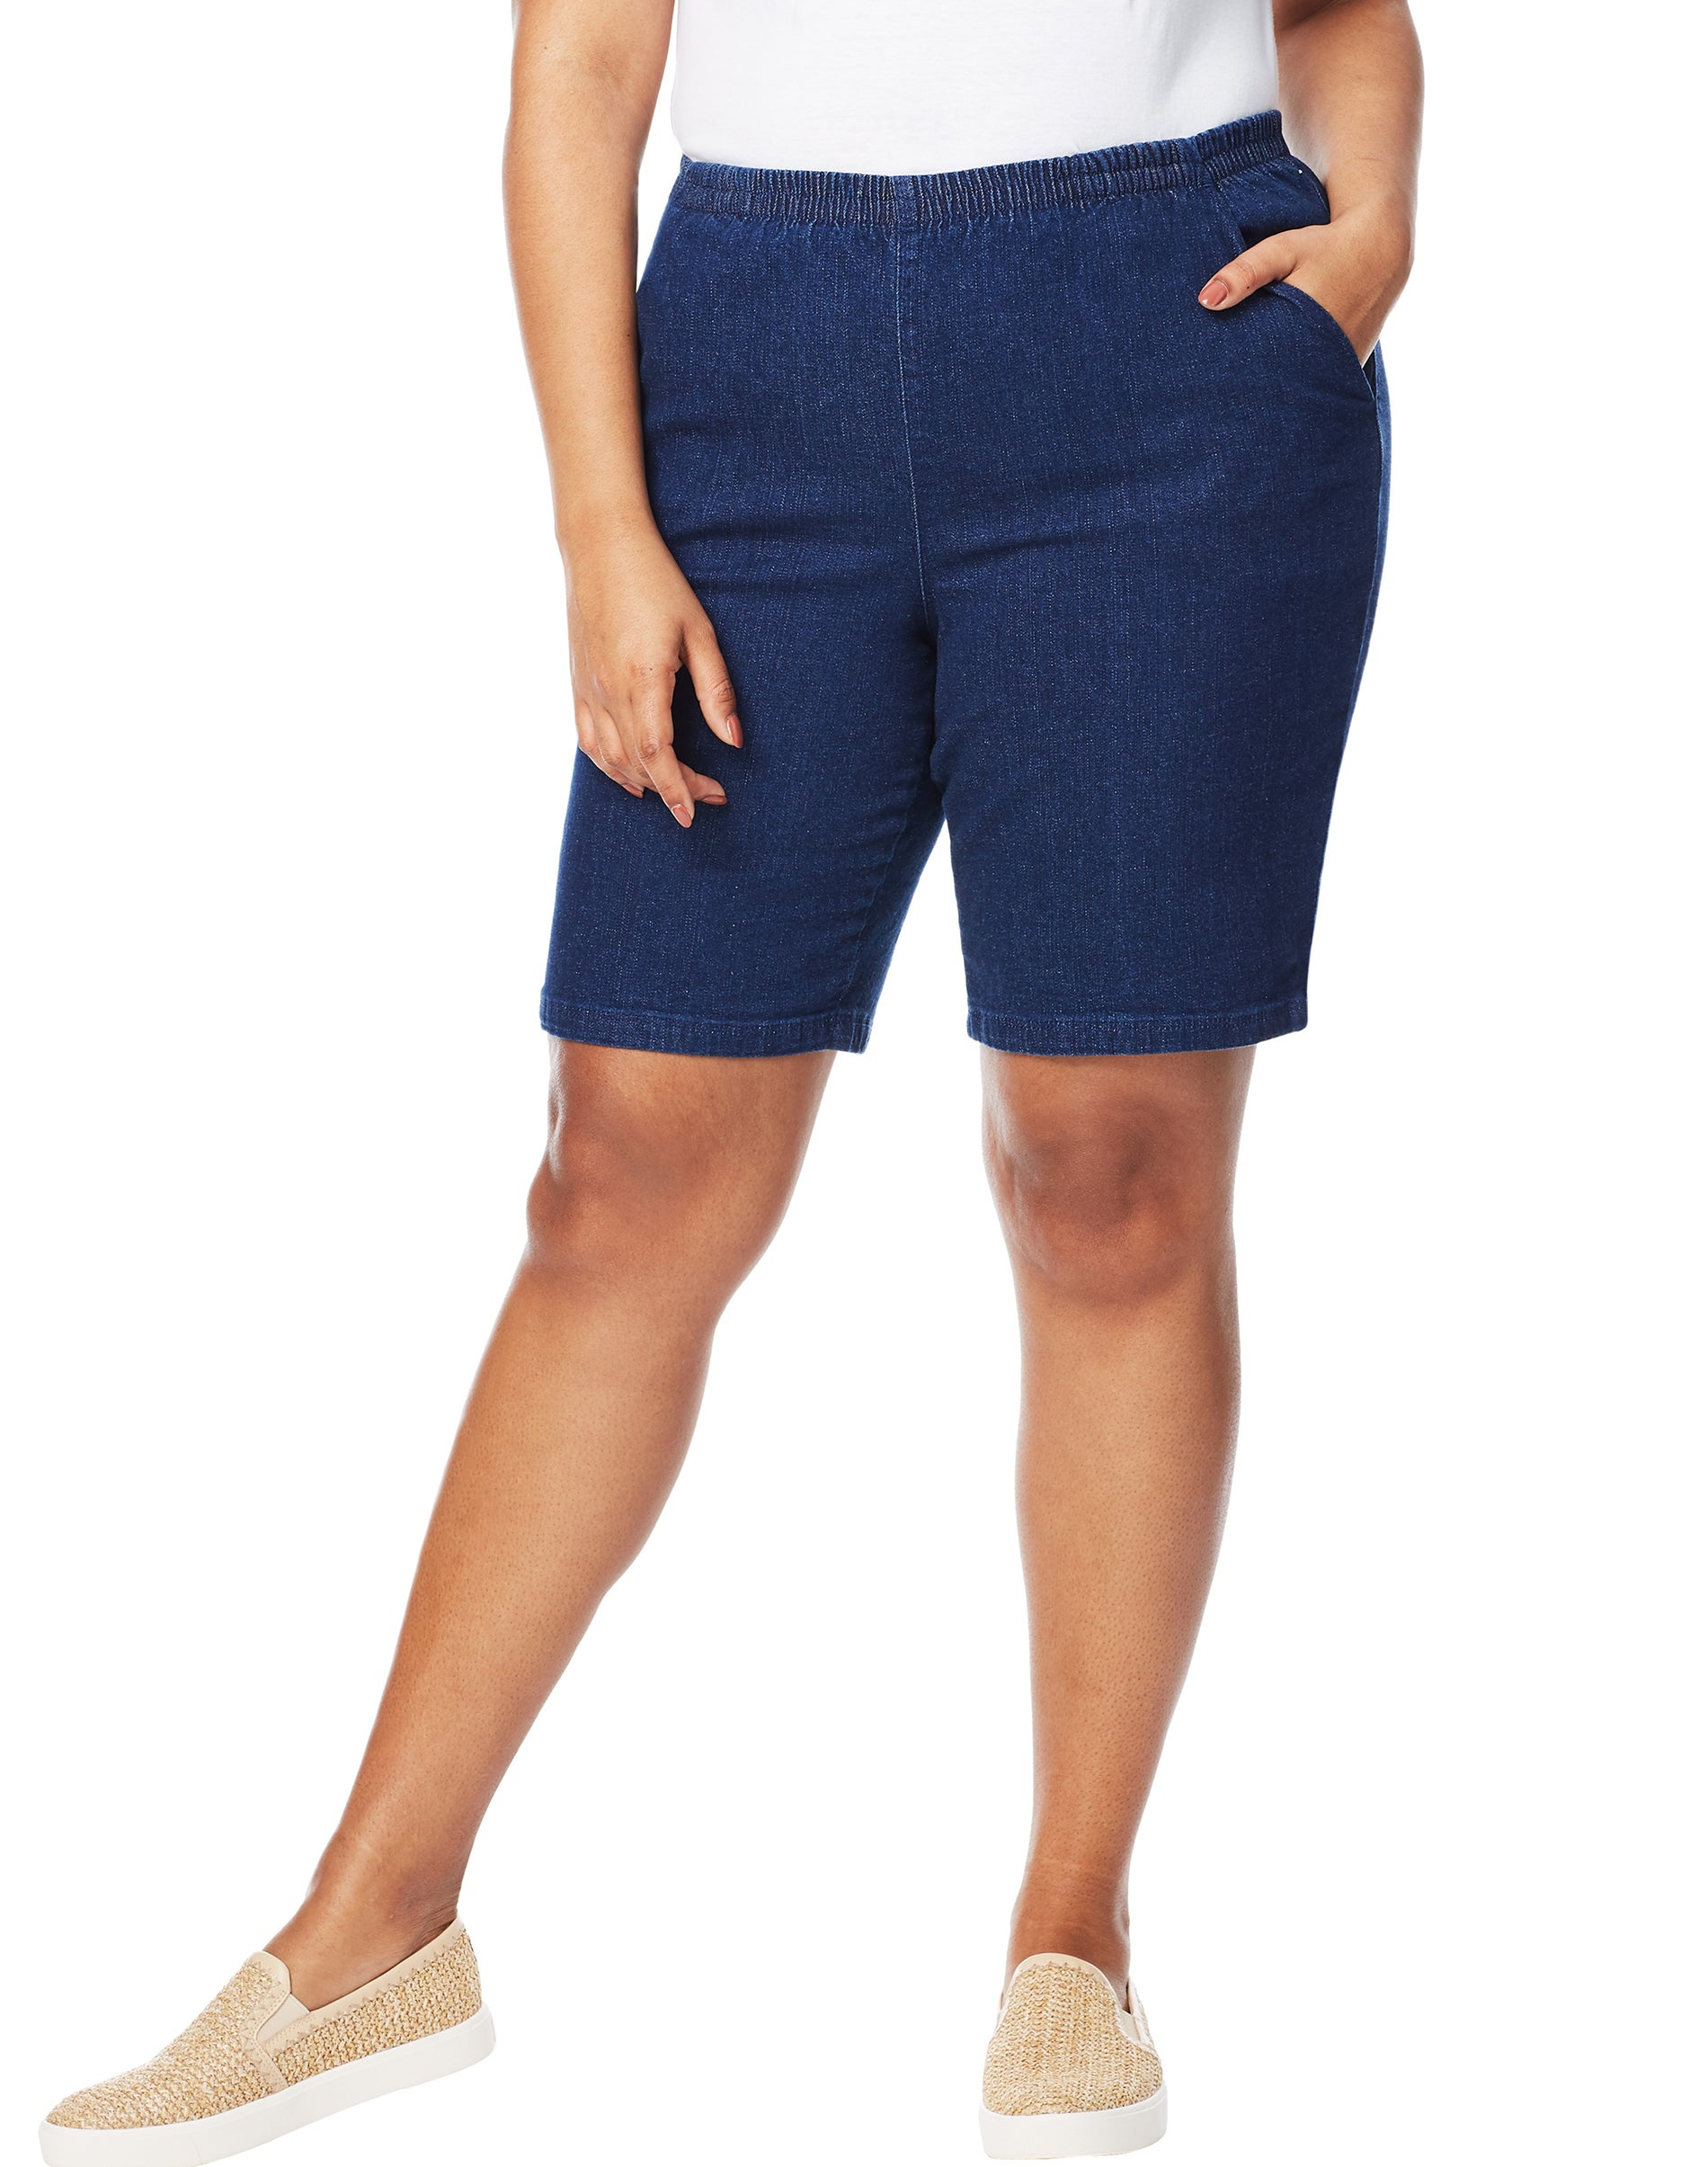 Just My Size Cotton Jersey Pull-On Women/'s Shorts